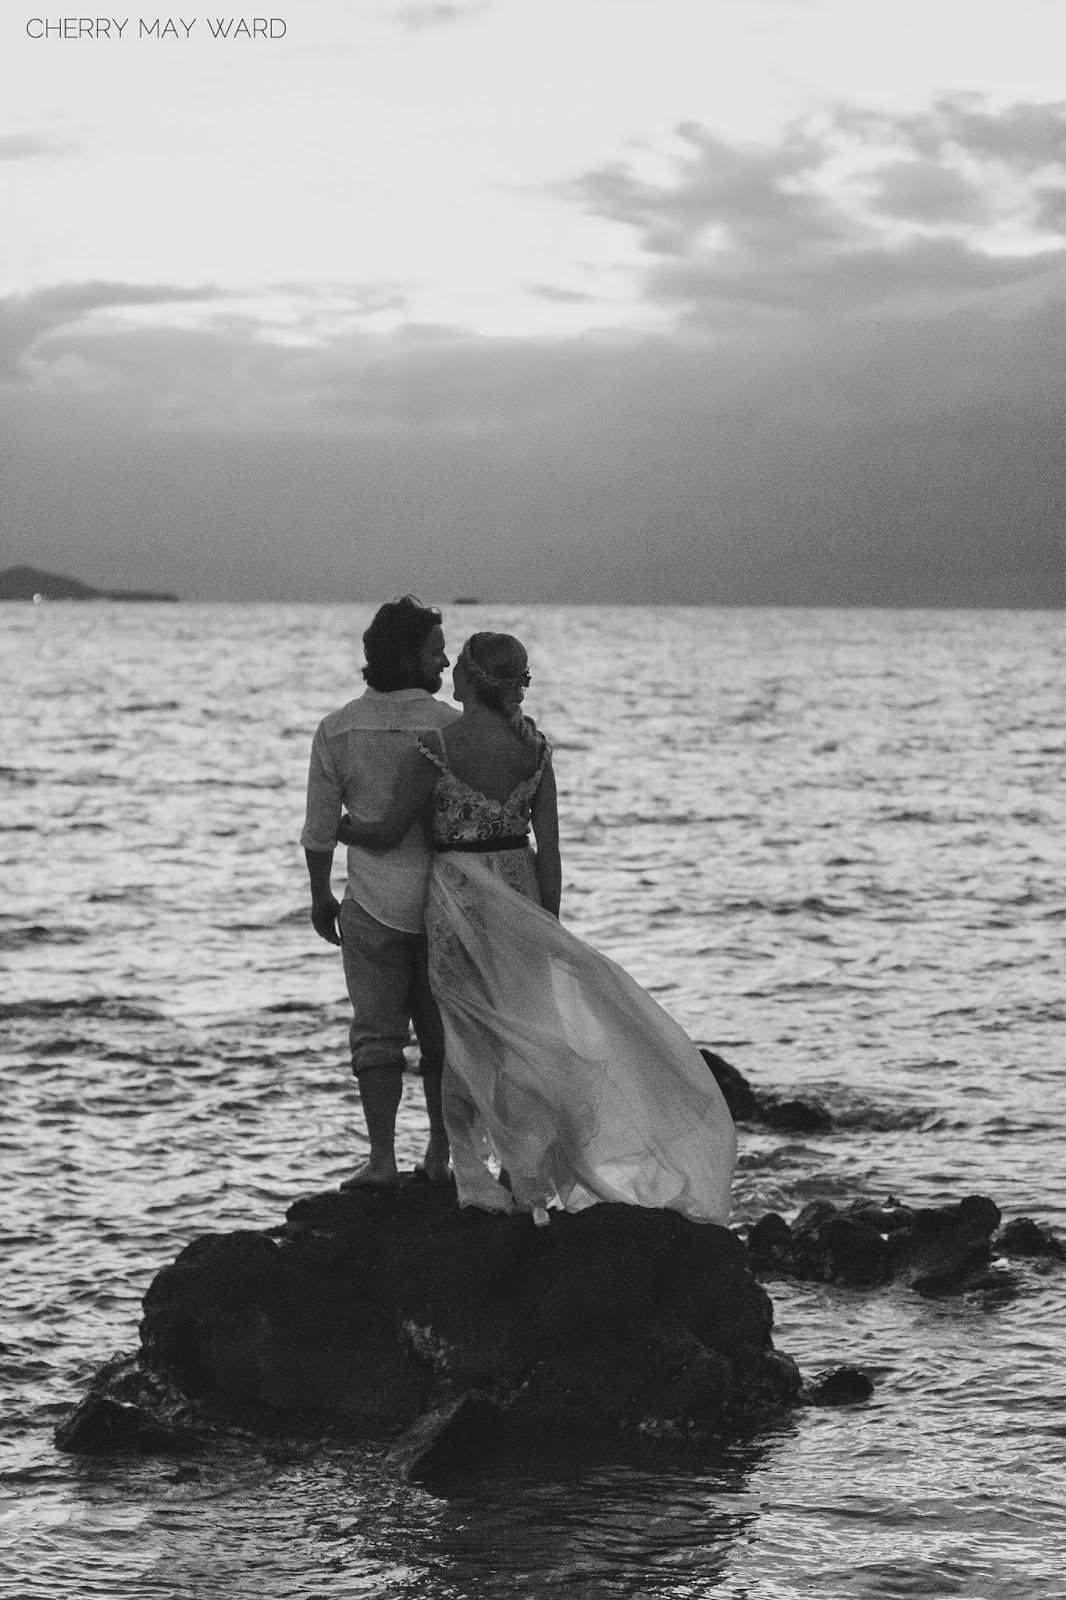 black and white wedding portraits, wedding portraits of bride and groom in the water, on the beach, beautiful photo of bride and groom standing on a rock in the sea at sunset, just married, newly weds on Koh Samui, destination wedding in Thailand, Cherry May Ward Photography